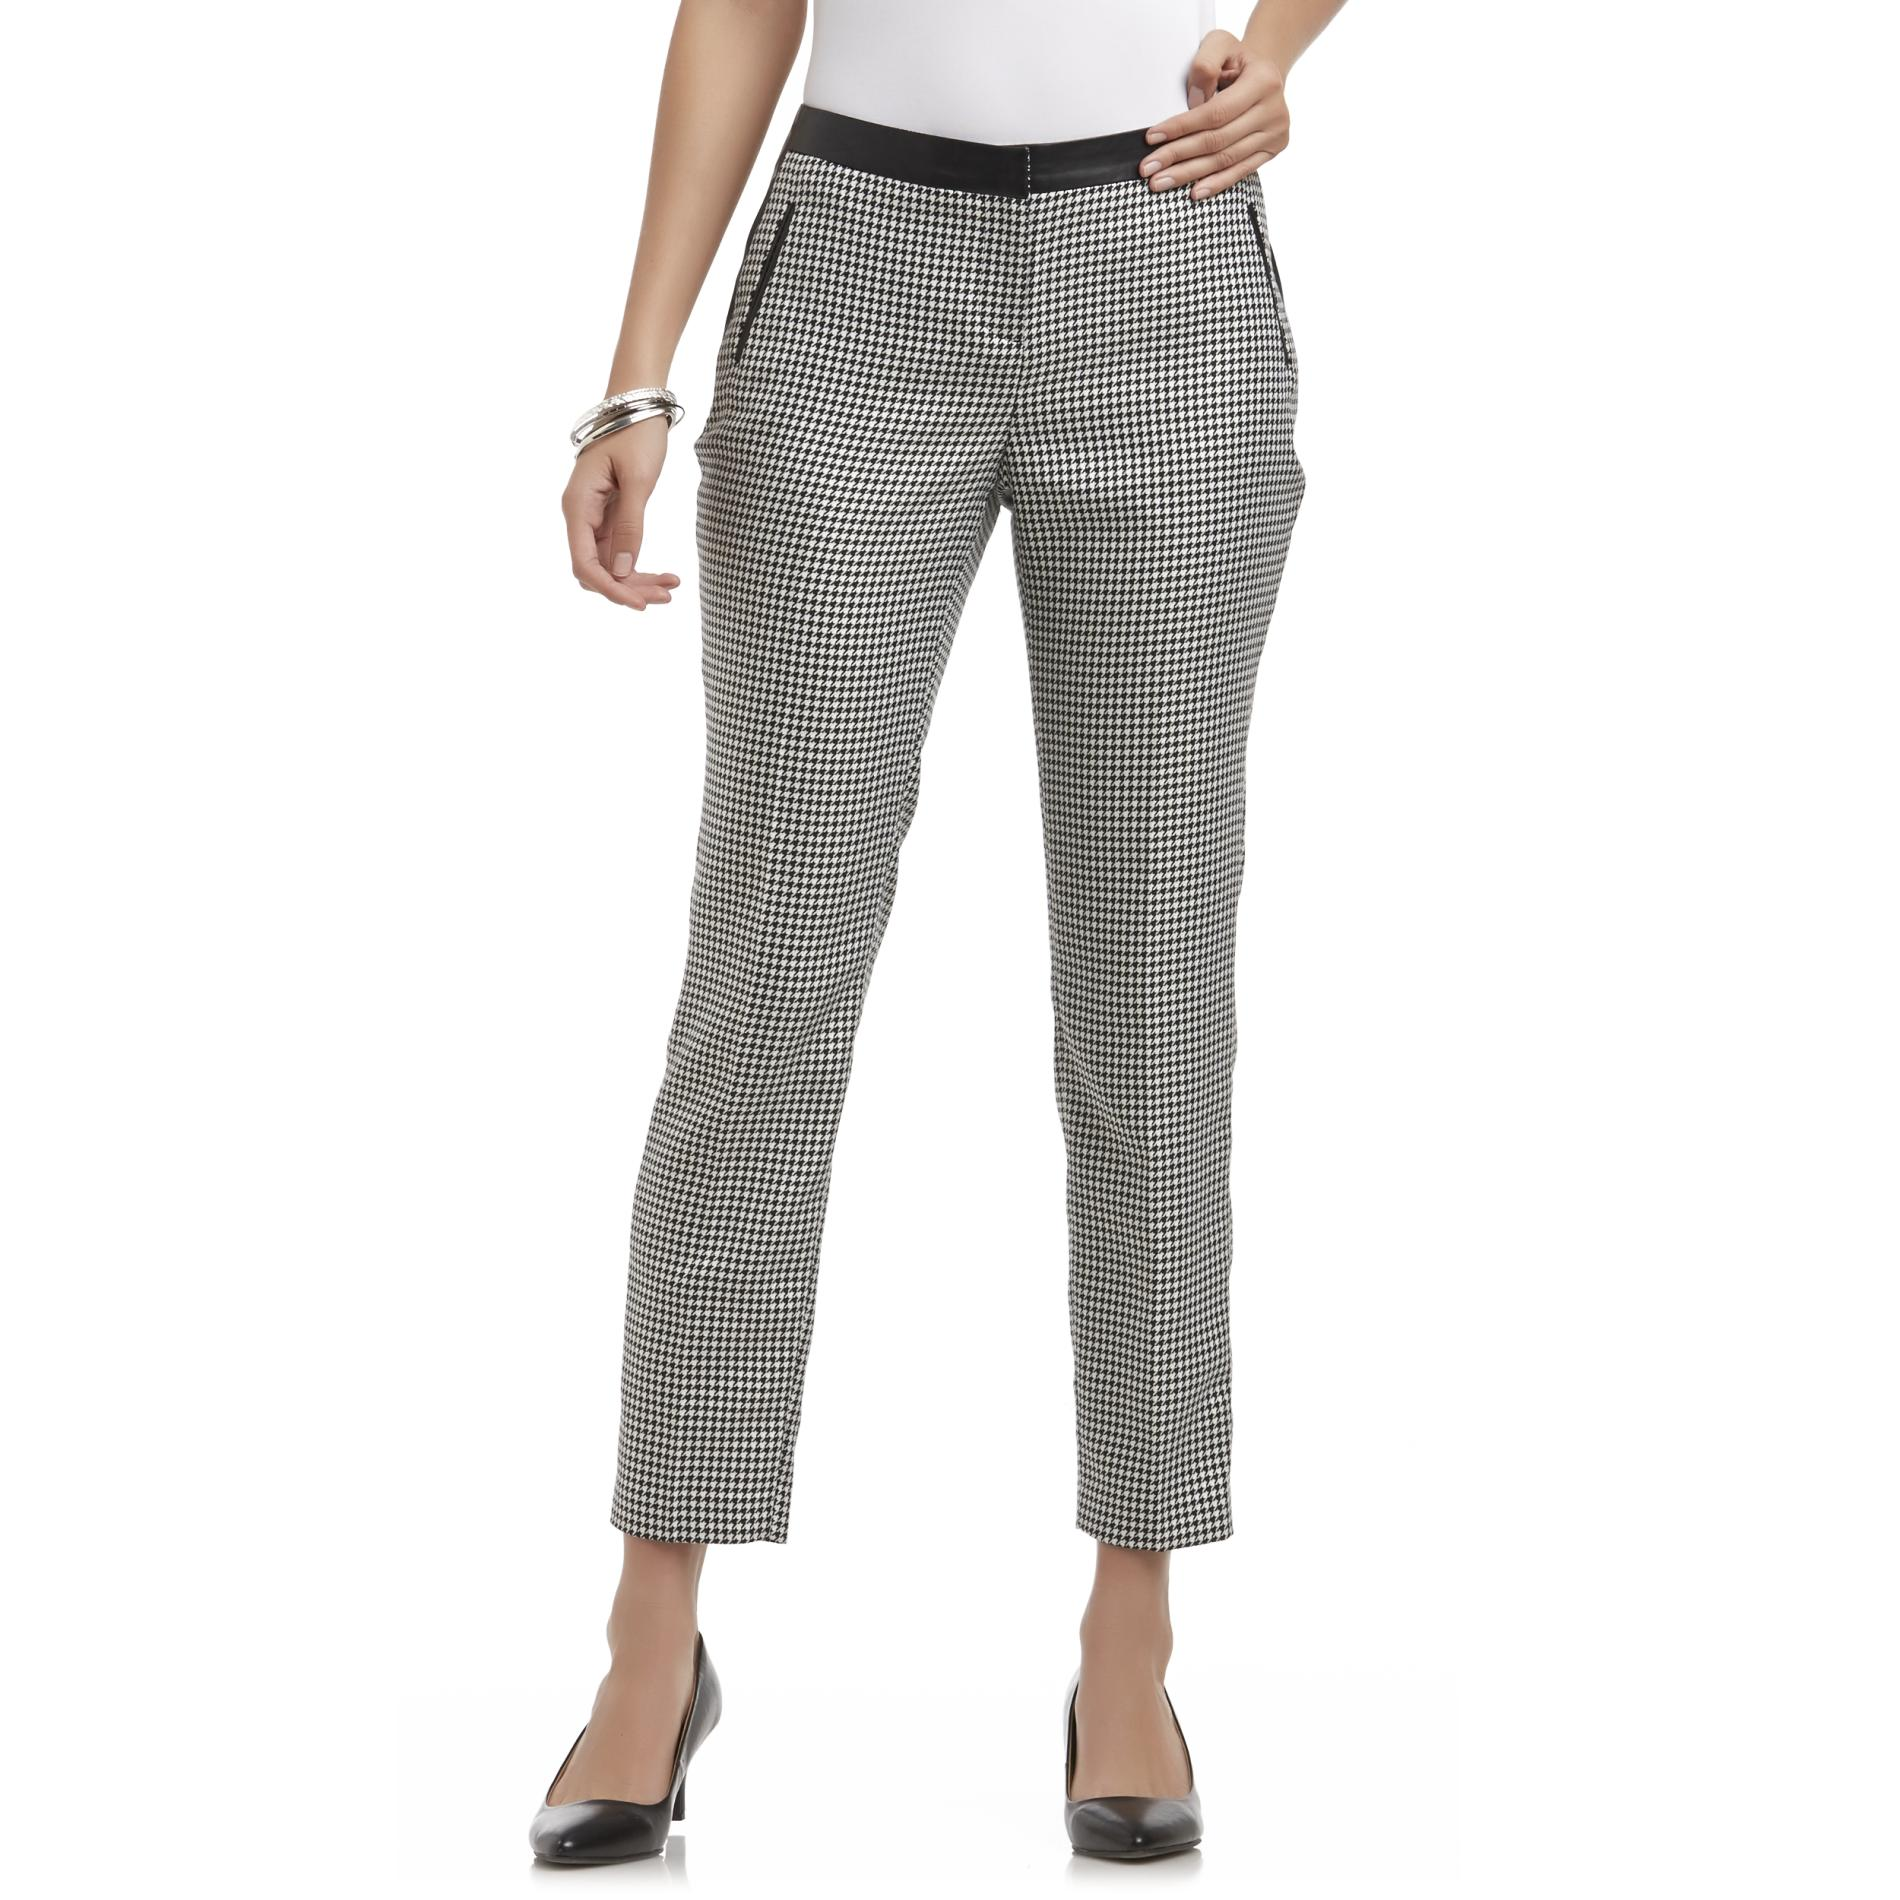 Attention Women's Slim Fit Pants - Houndstooth at Kmart.com